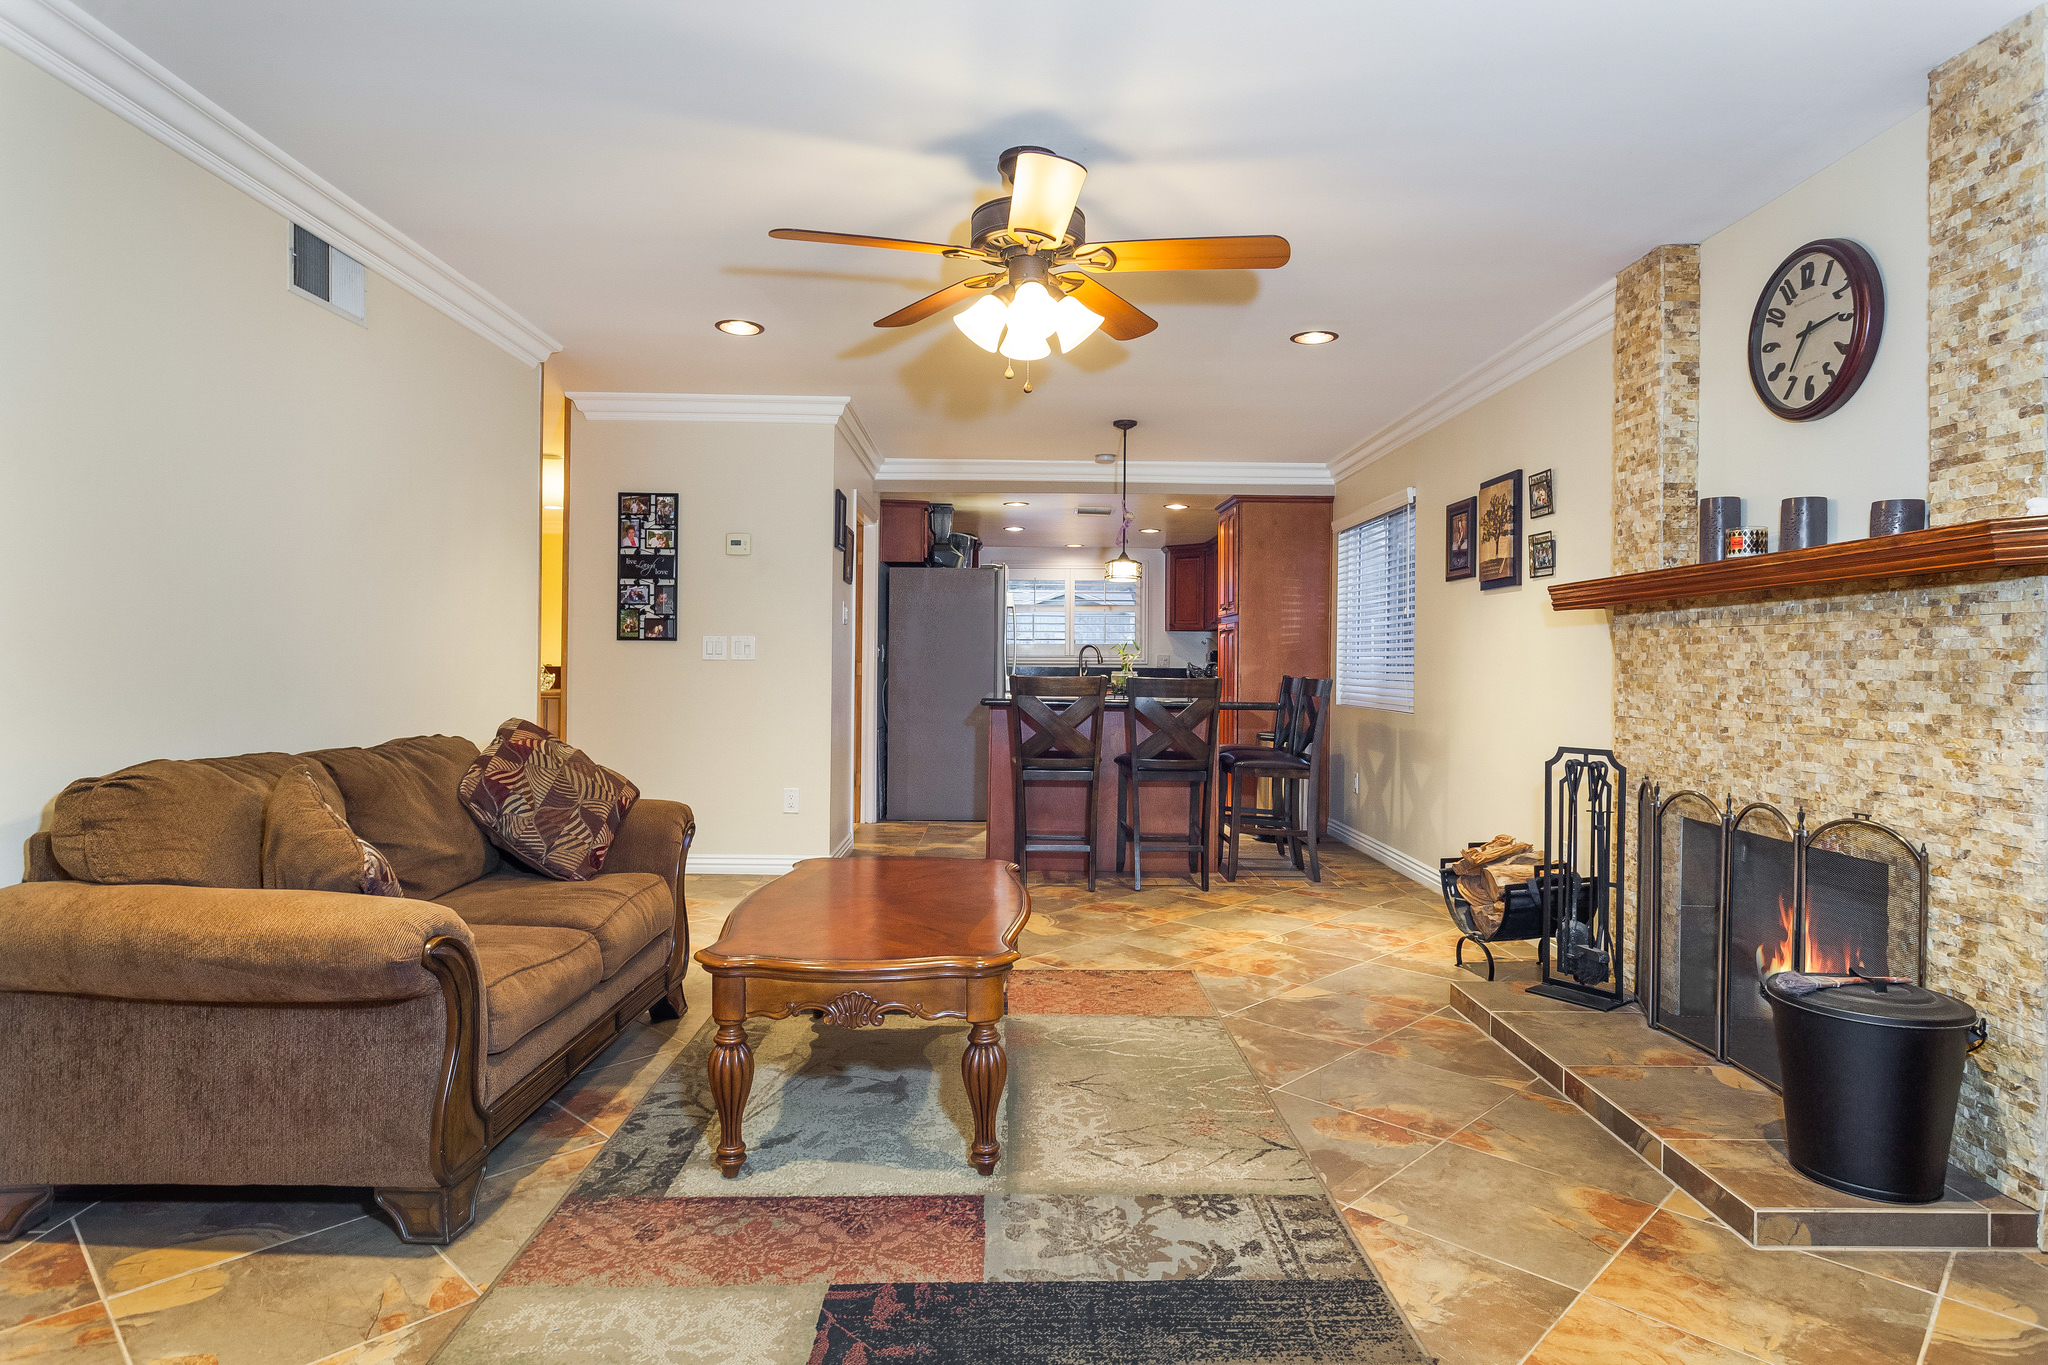 reverse view of living room with fireplace